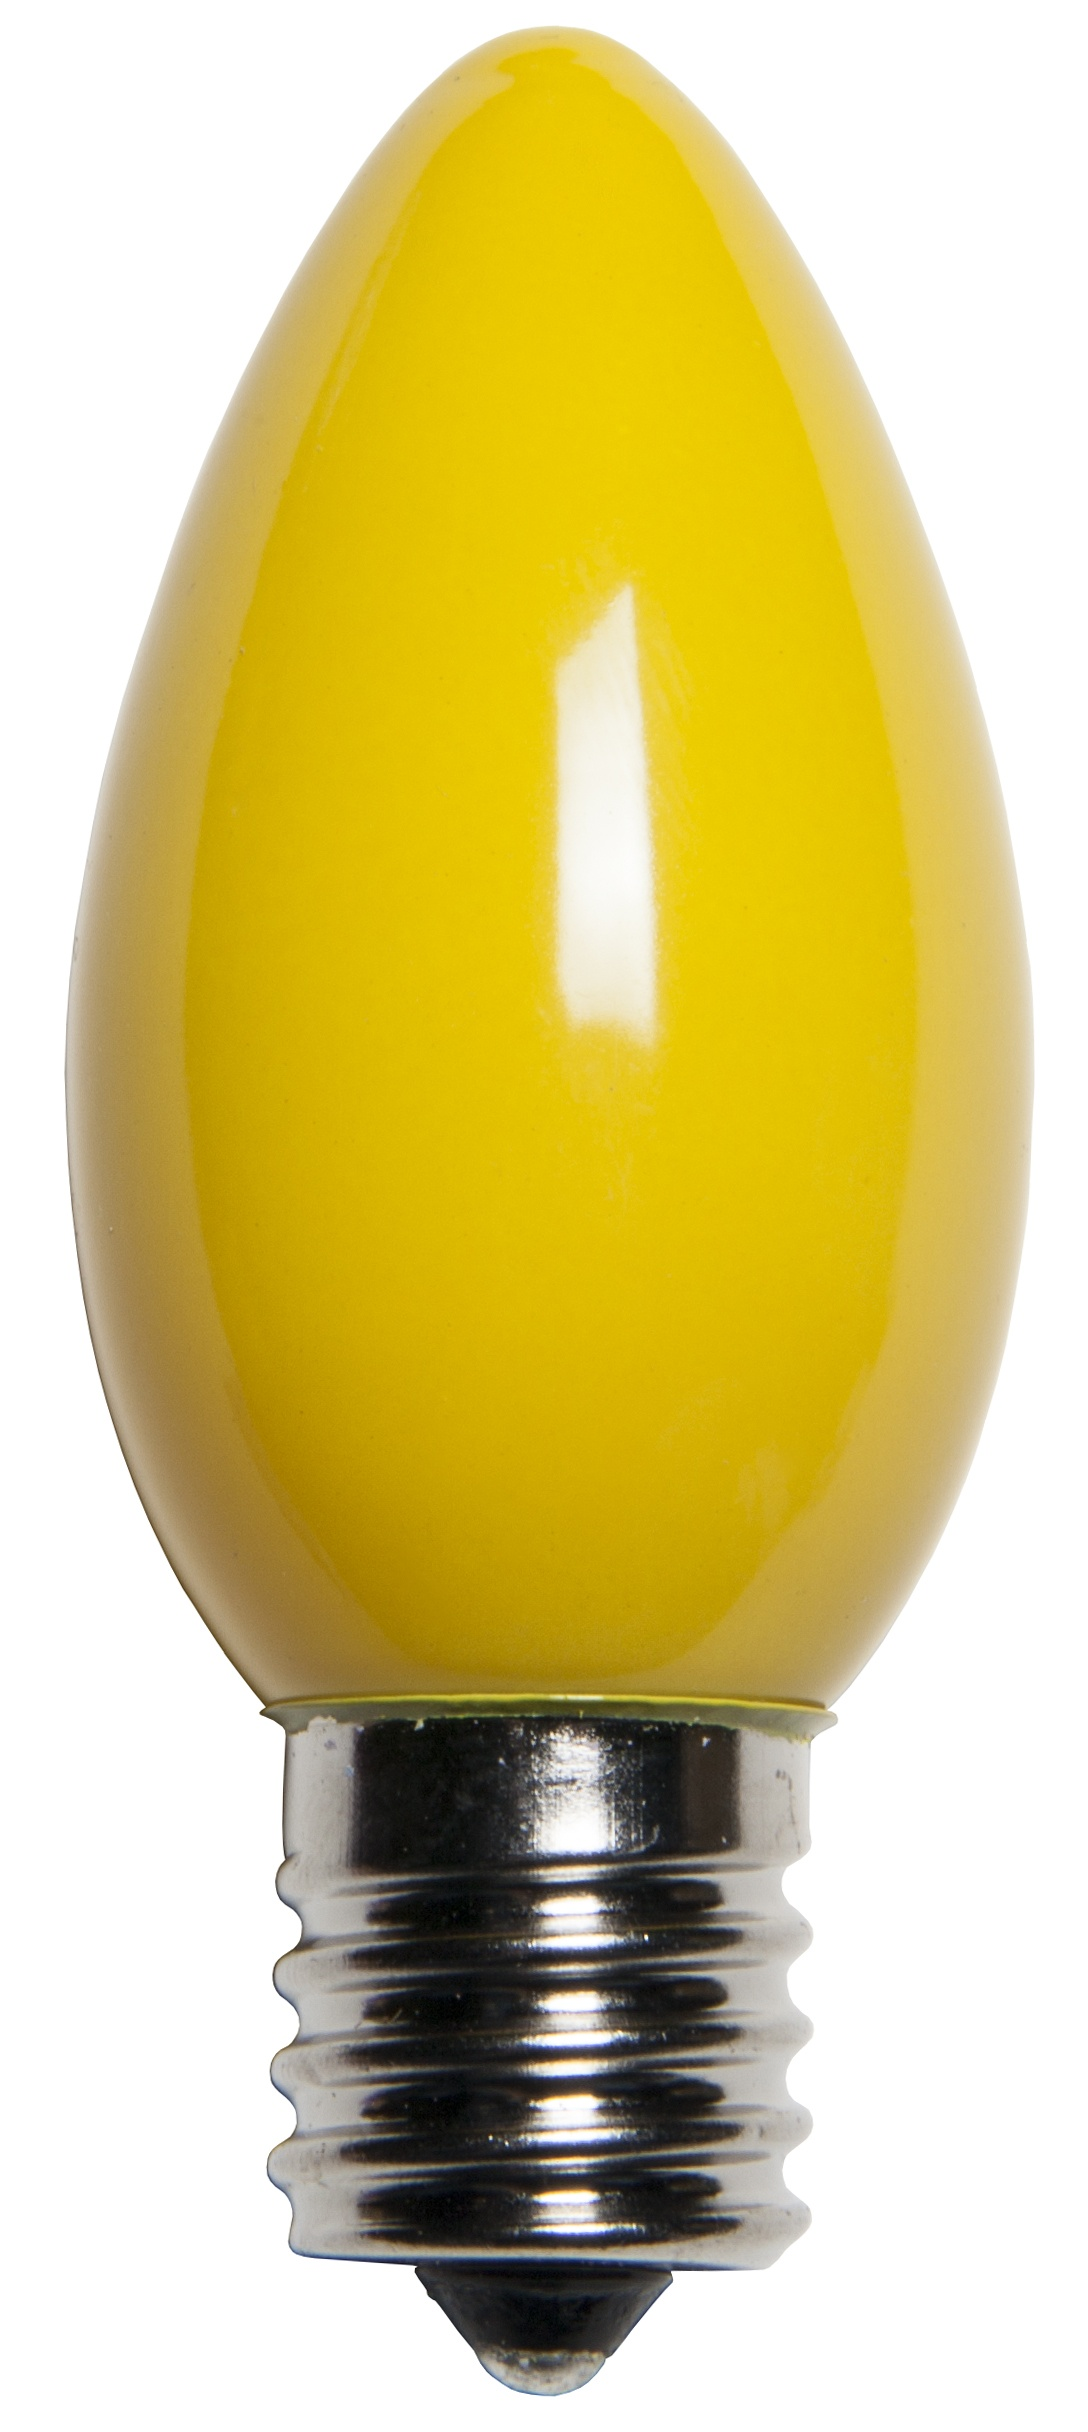 C9 Christmas Light Bulb C9 Yellow Christmas Light Bulbs Opaque